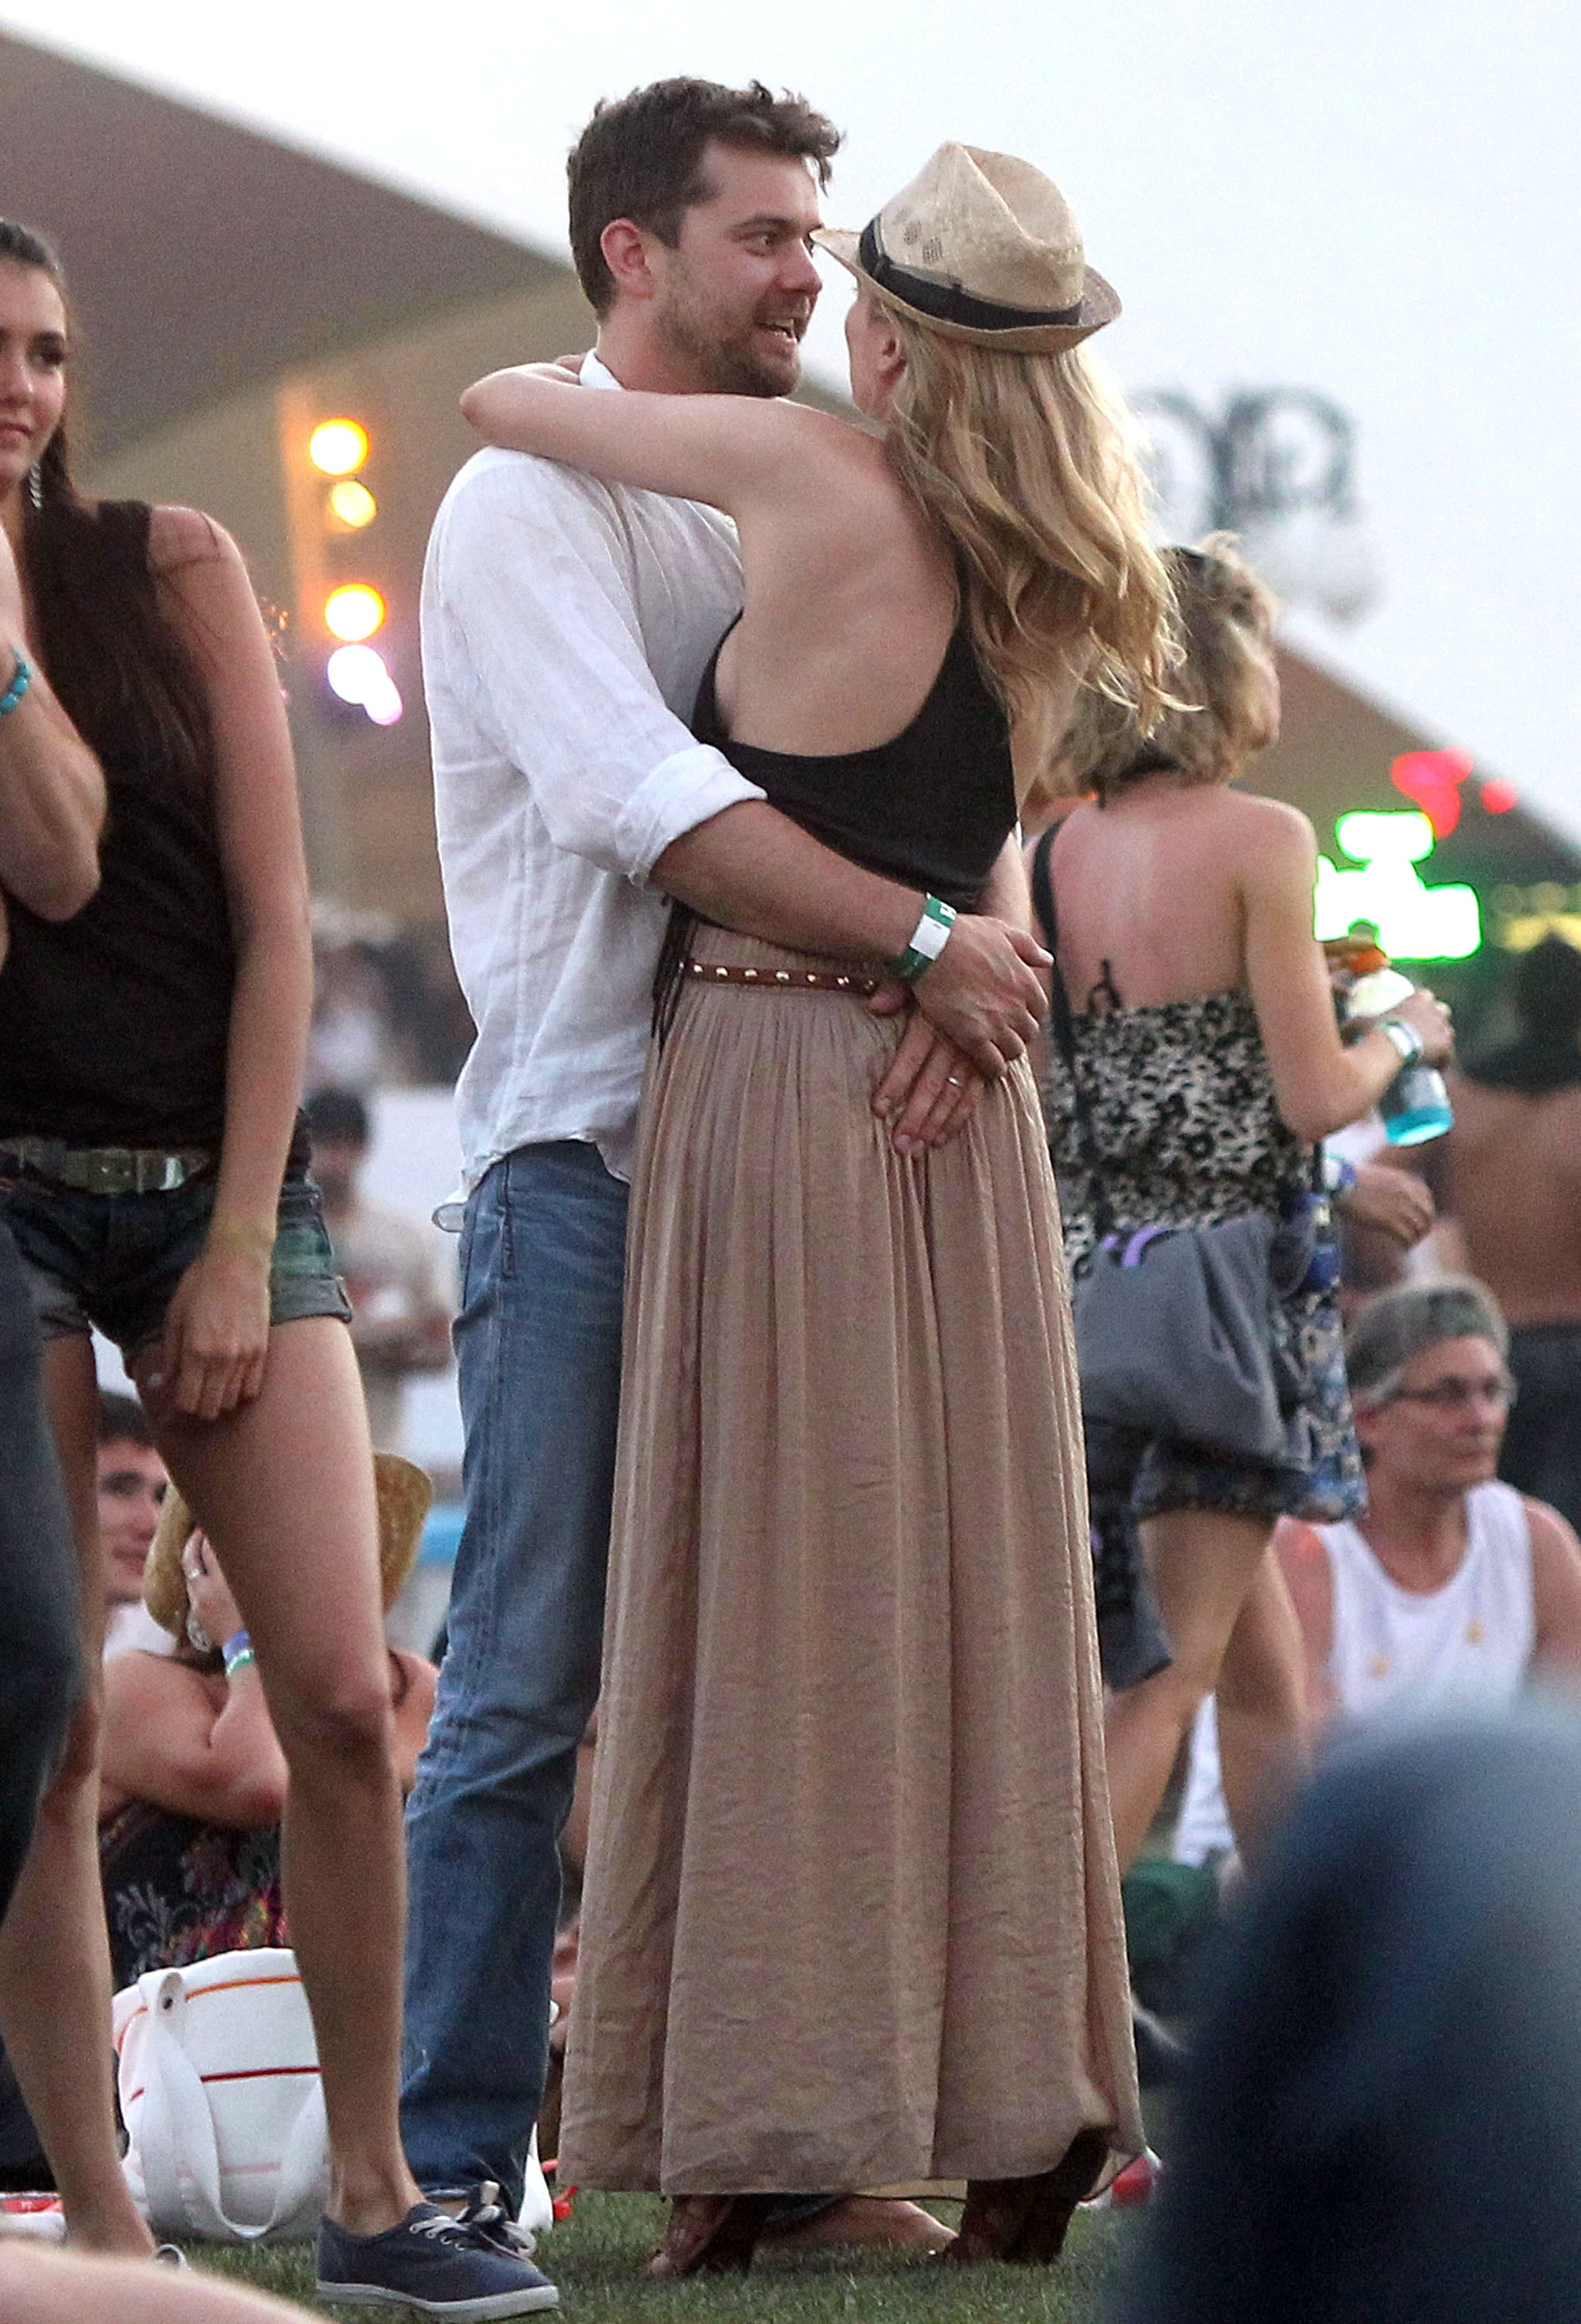 Diane Kruger and Joshua Jackson danced in the 2011 crowd.